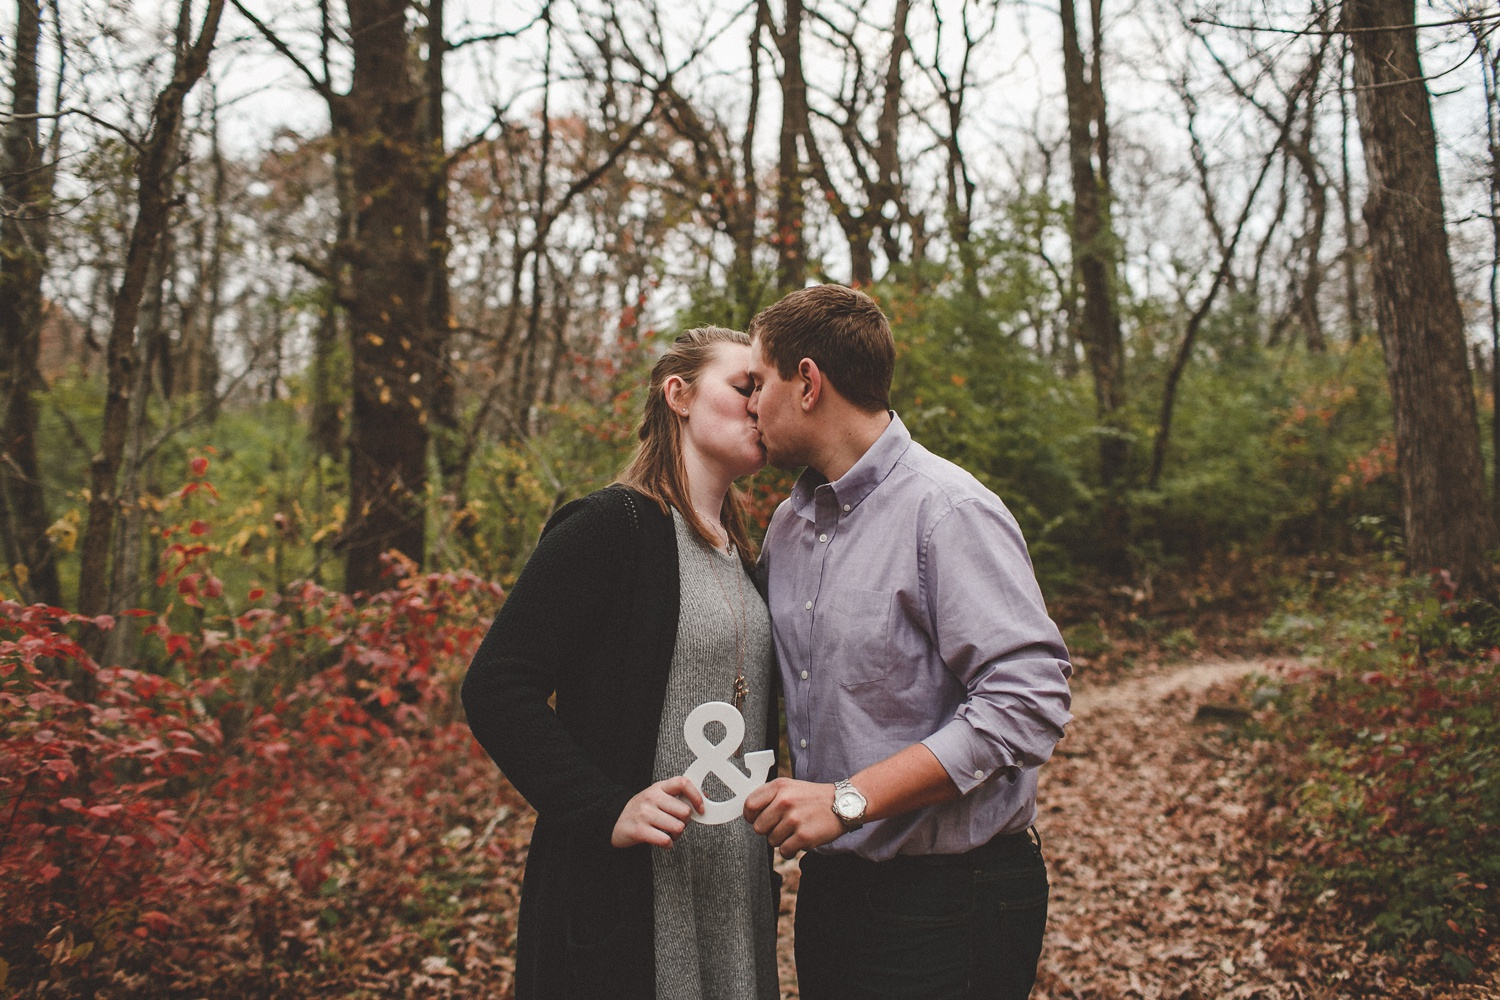 rock_cut_state_park_rockford_IL_engagement_photographer_0028.jpg